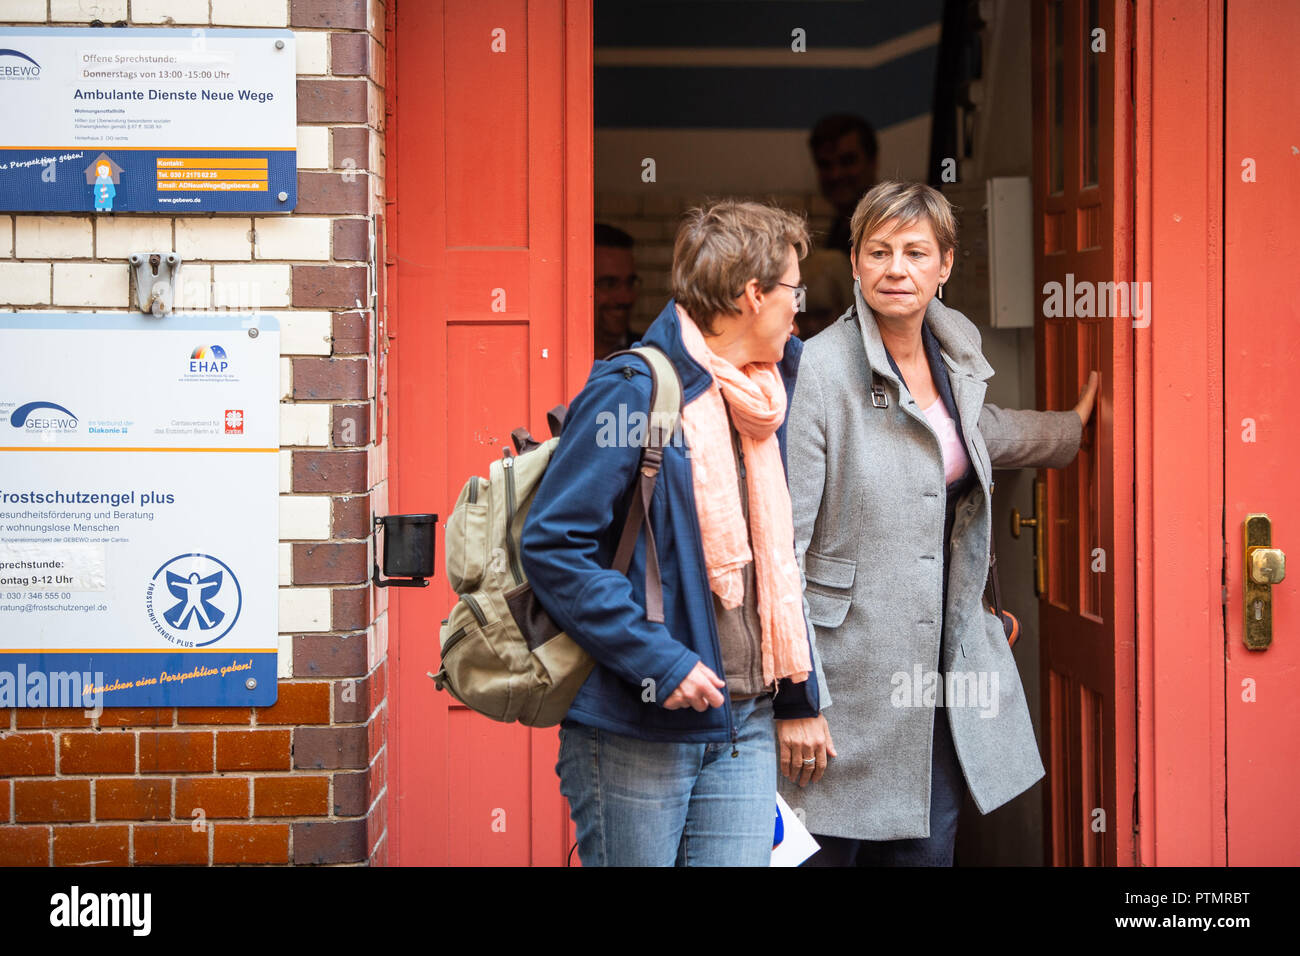 10 October 2018, Berlin: Elke Breitenbach (r, Die Linke), Senator for Integration, Labour and Social Affairs, is leaving the building of the coordination office for location development for cold aid. On Wednesday, the Berlin Senator for Integration, Labour and Social Affairs Breitenbach (Die Linke) visited Berlin institutions of homeless help. Photo: Arne Immanuel Bänsch/dpa Stock Photo